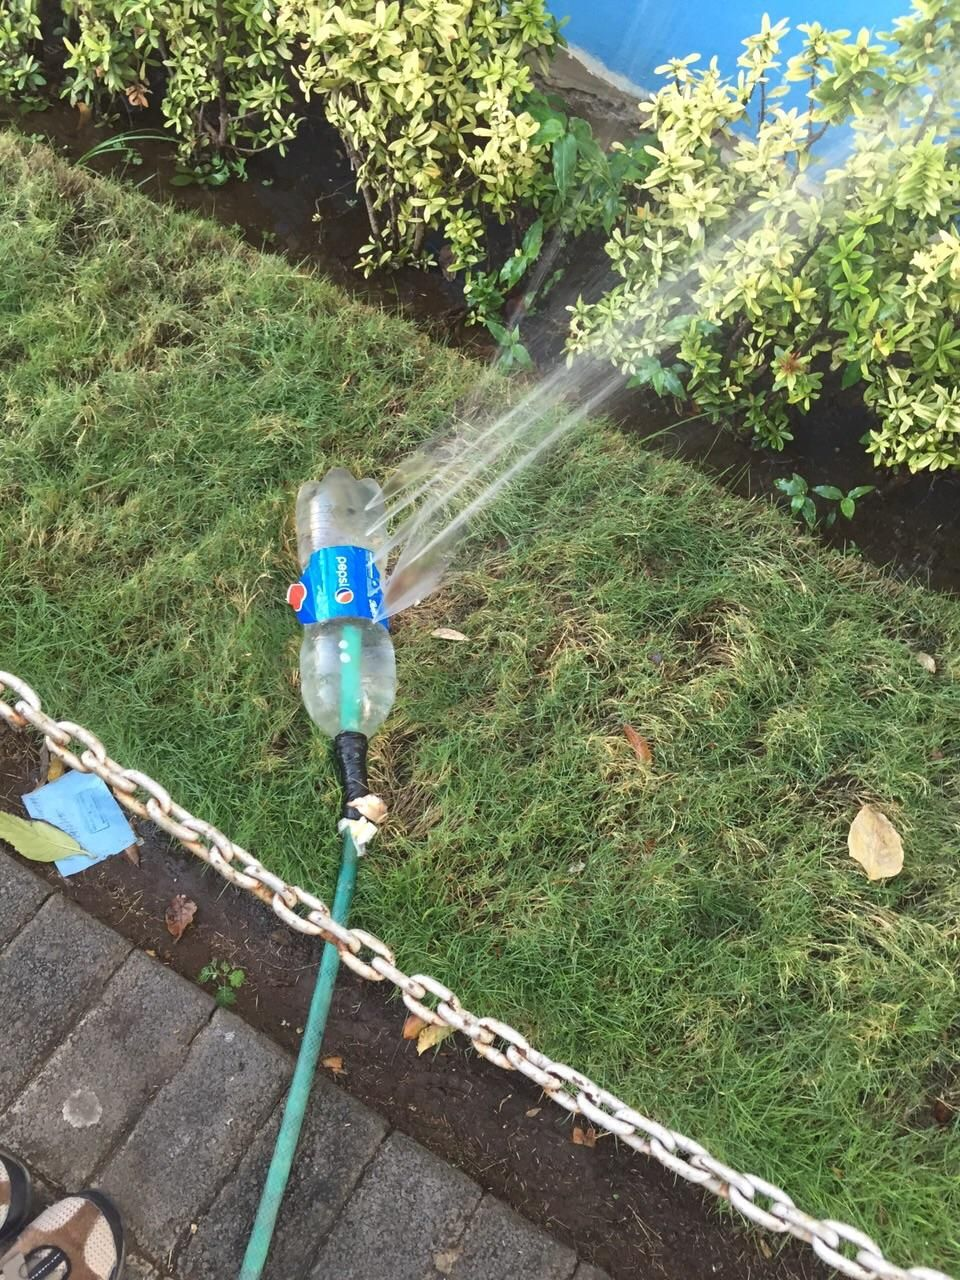 You can use a plastic bottle to make a DIY sprinkler in a pinch.